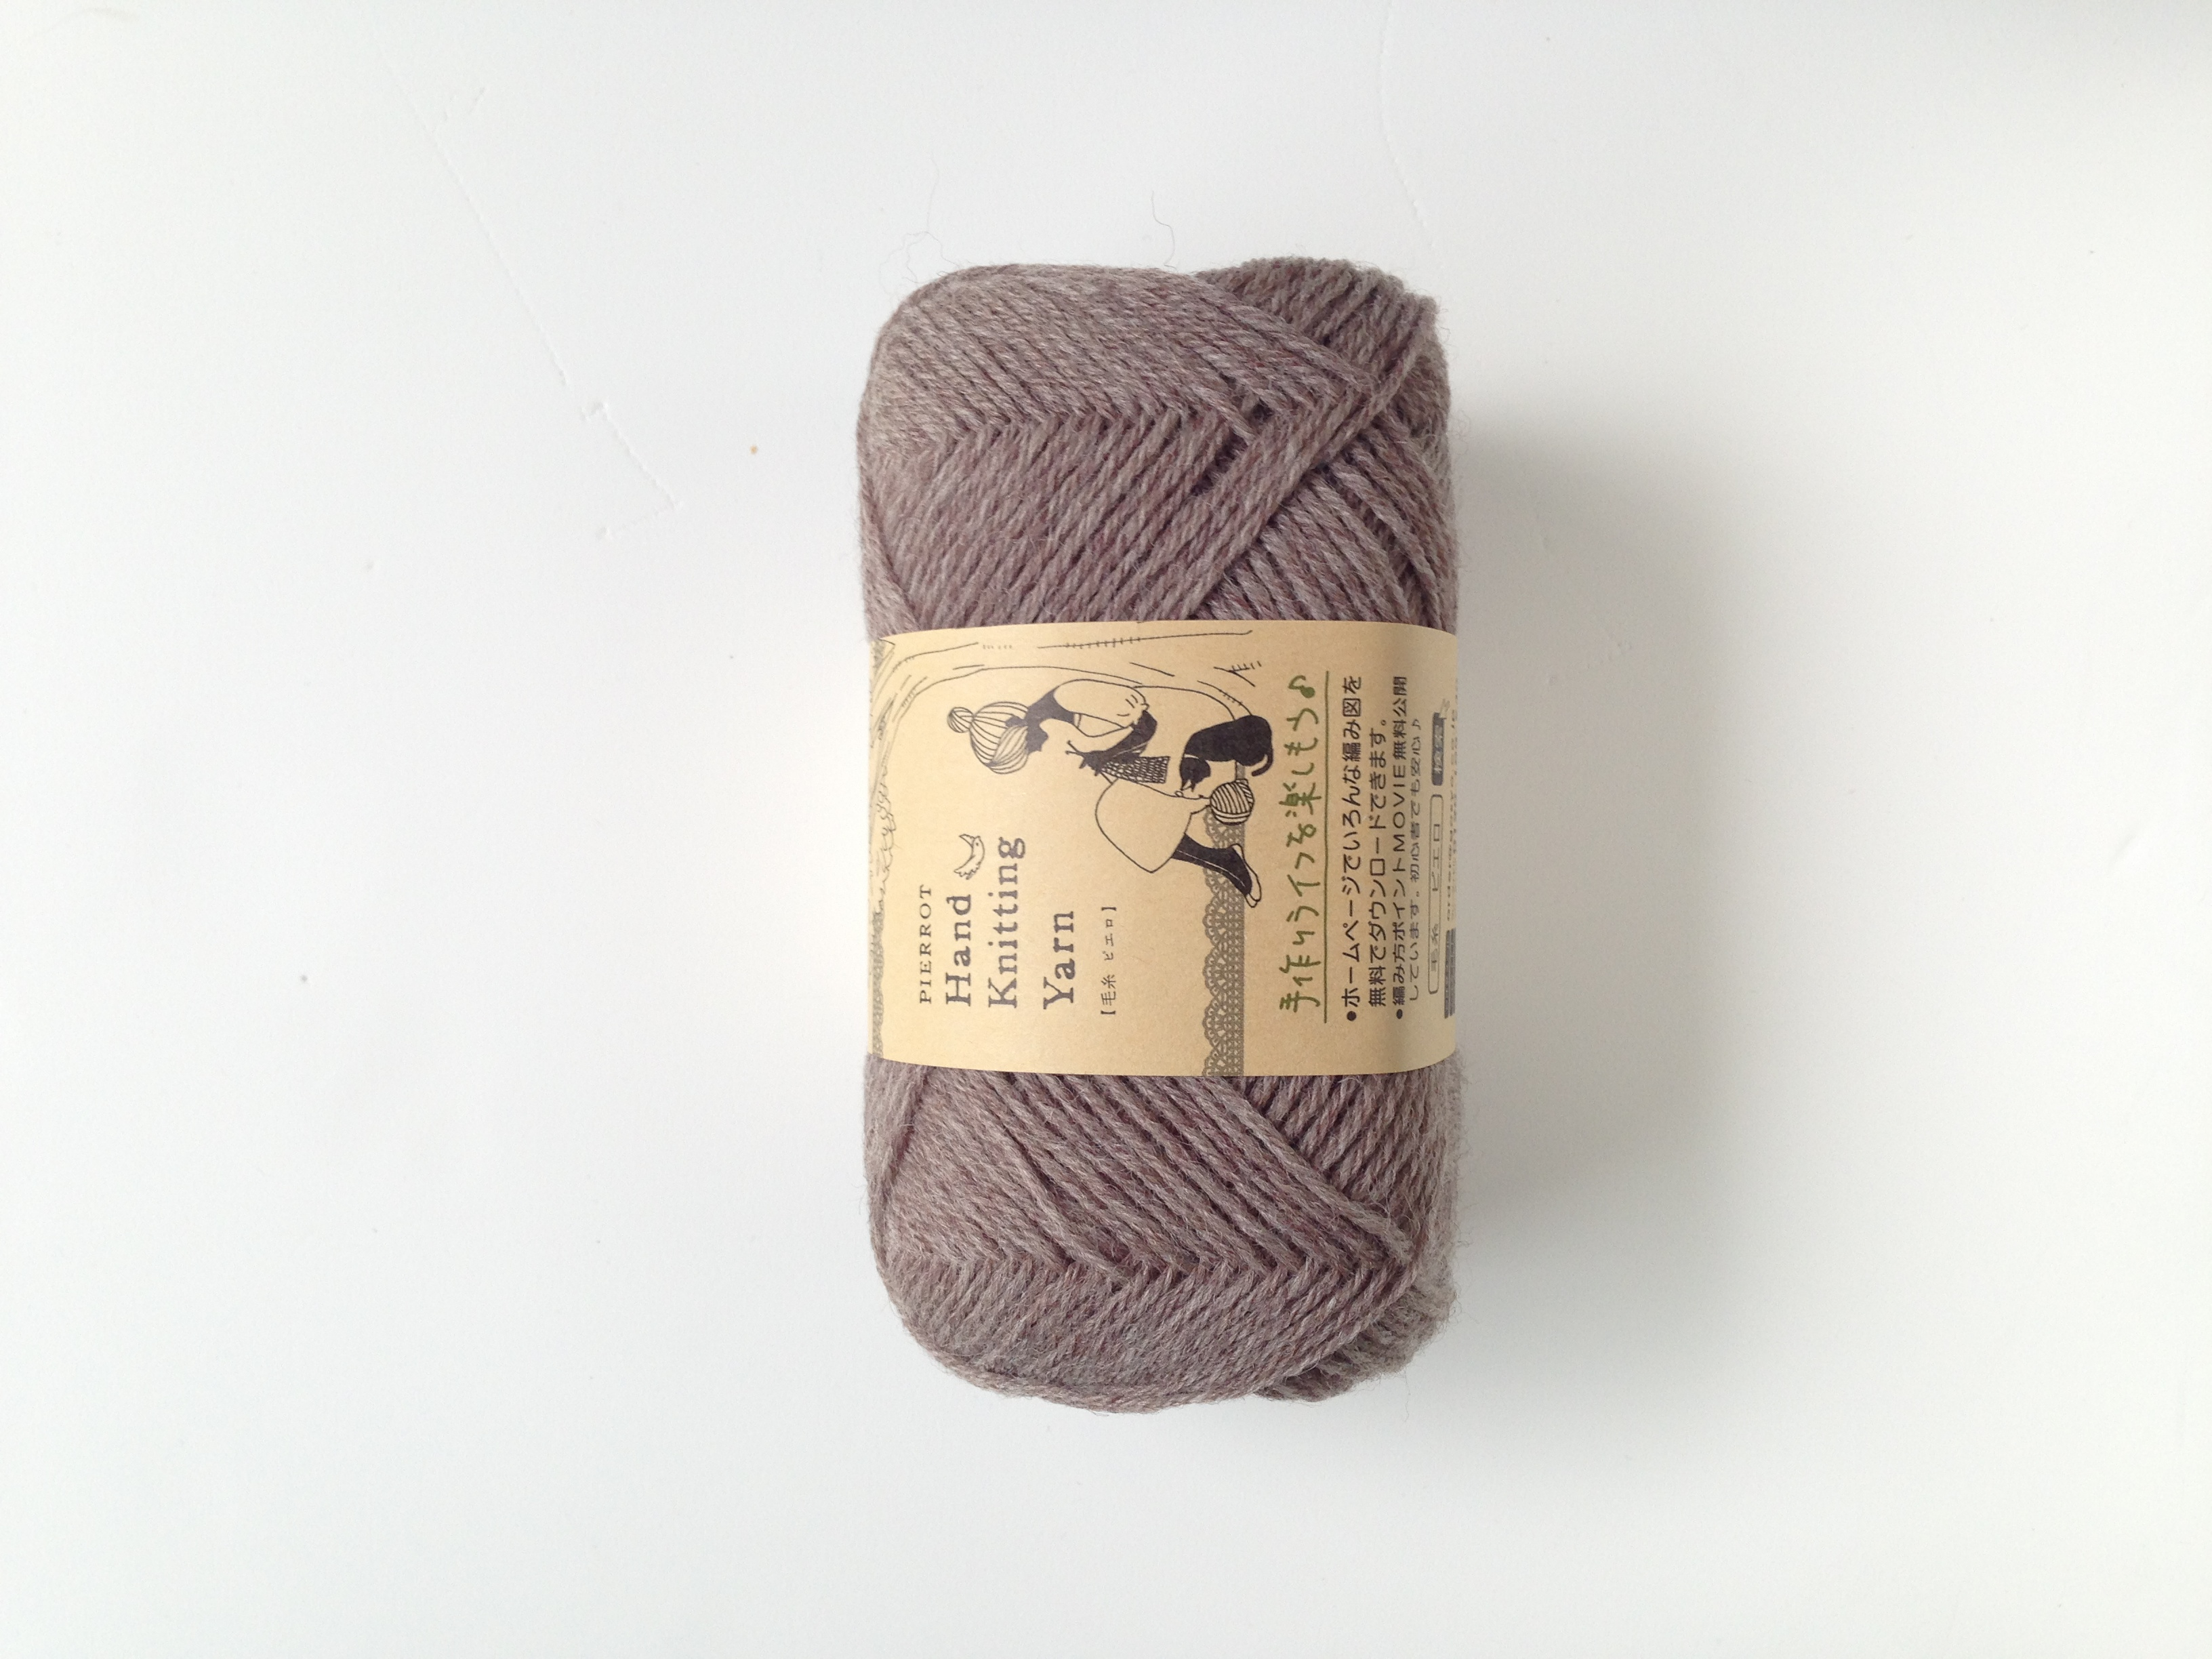 100% Lace Merino Wool. Colour is Grage #9.